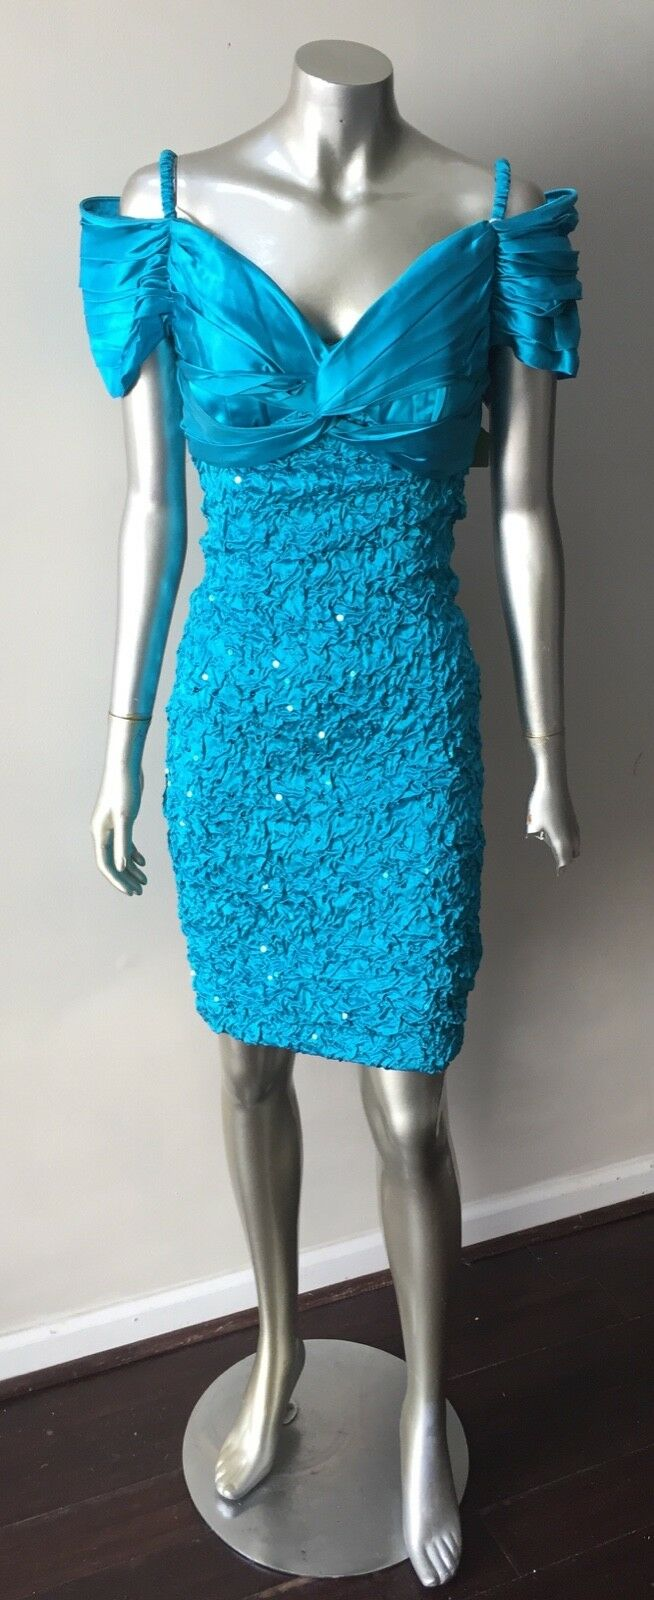 NWT Ruche Embellished Vintage 90s Satin Bodycon Spandex BLue Party Dress Size 8